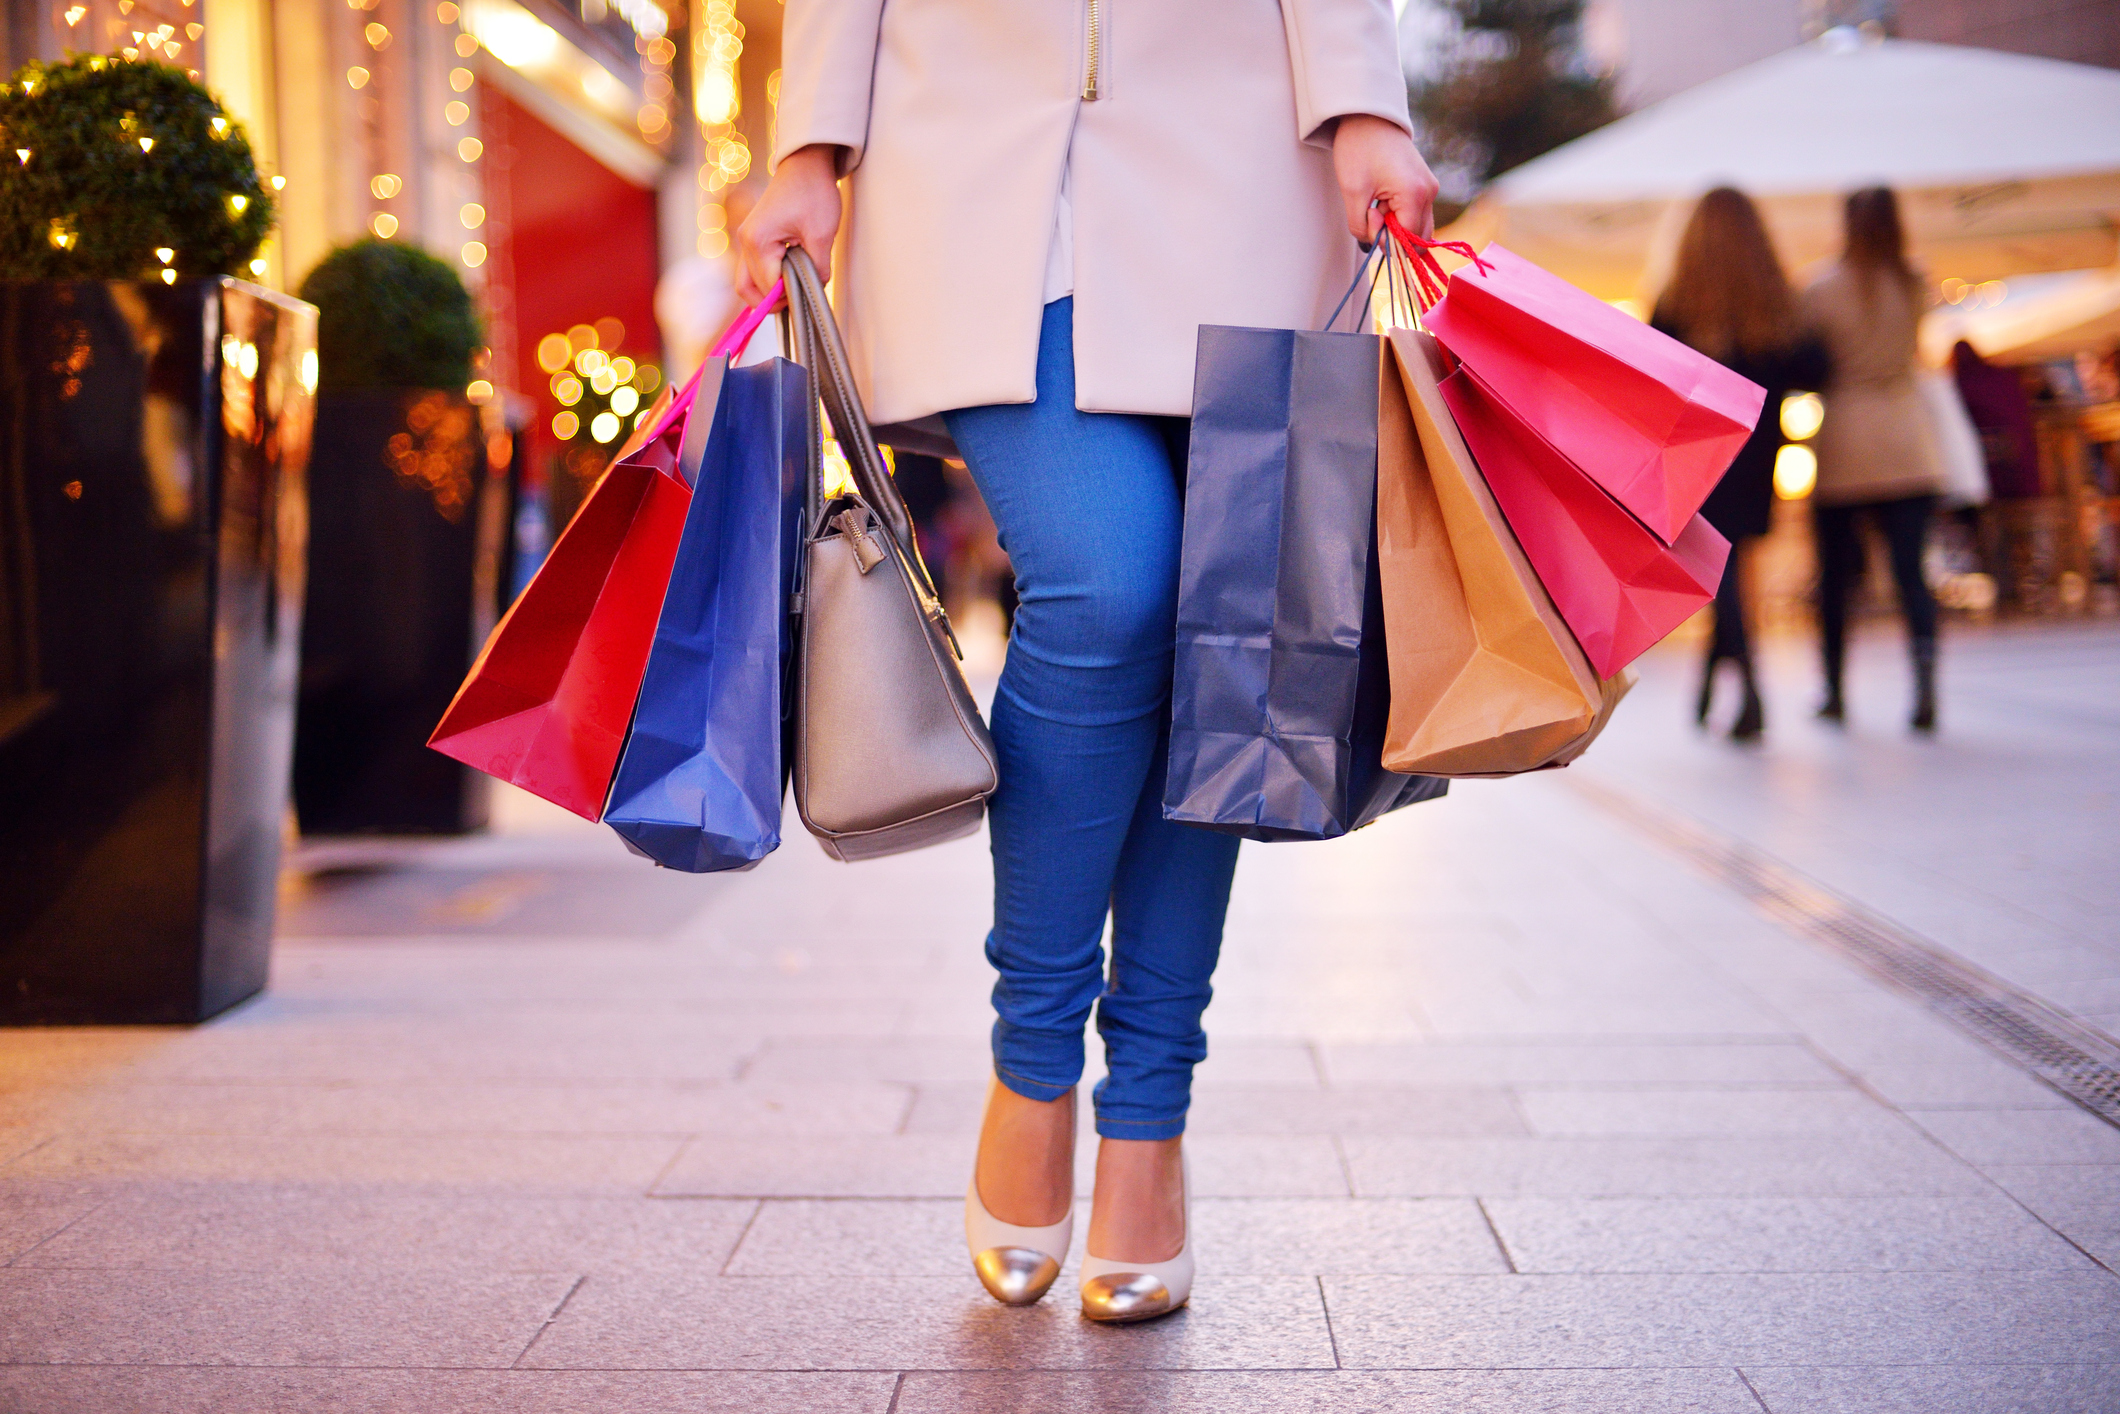 Young woman shopping in the city, legs and hands close up, carrying paper bags.